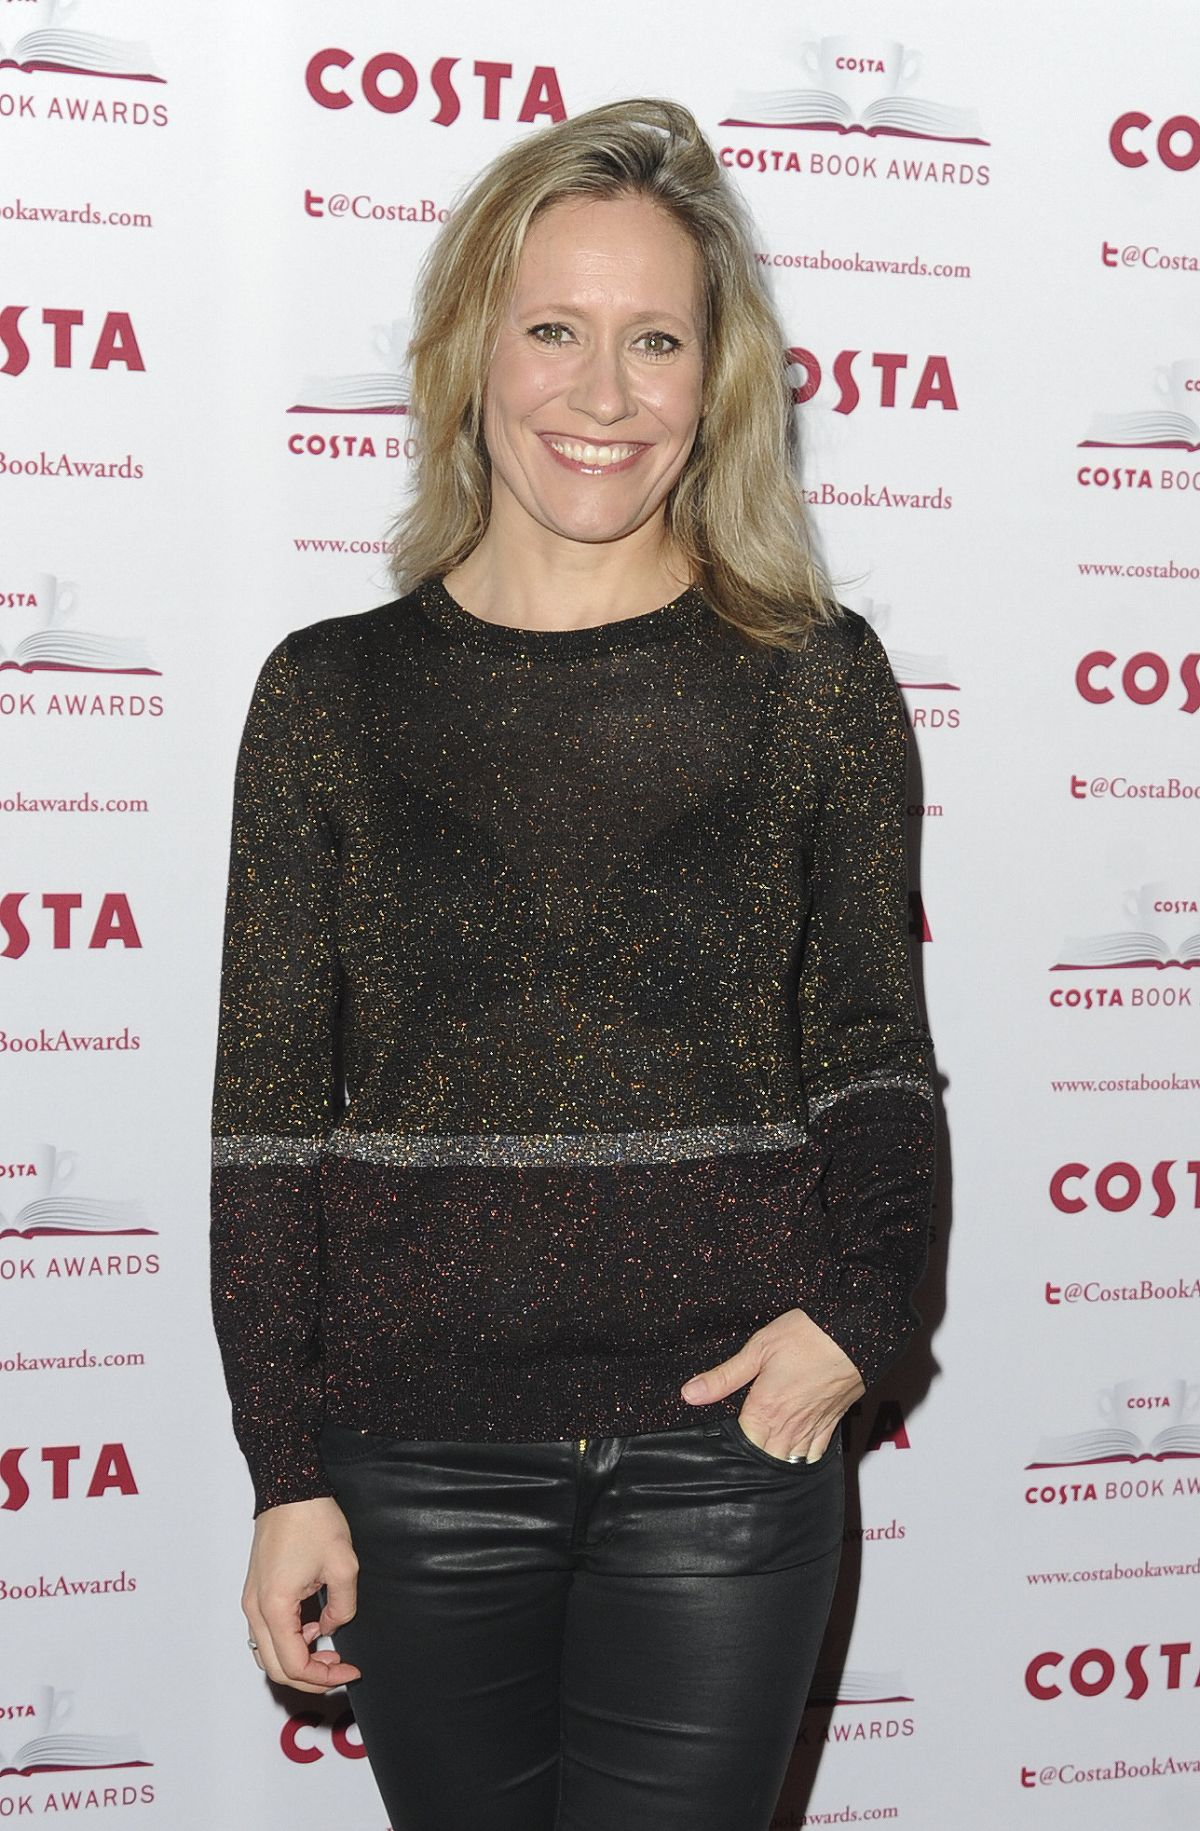 SOPHIE RAWORTH at Costa Book Awards in London 01/31/2017